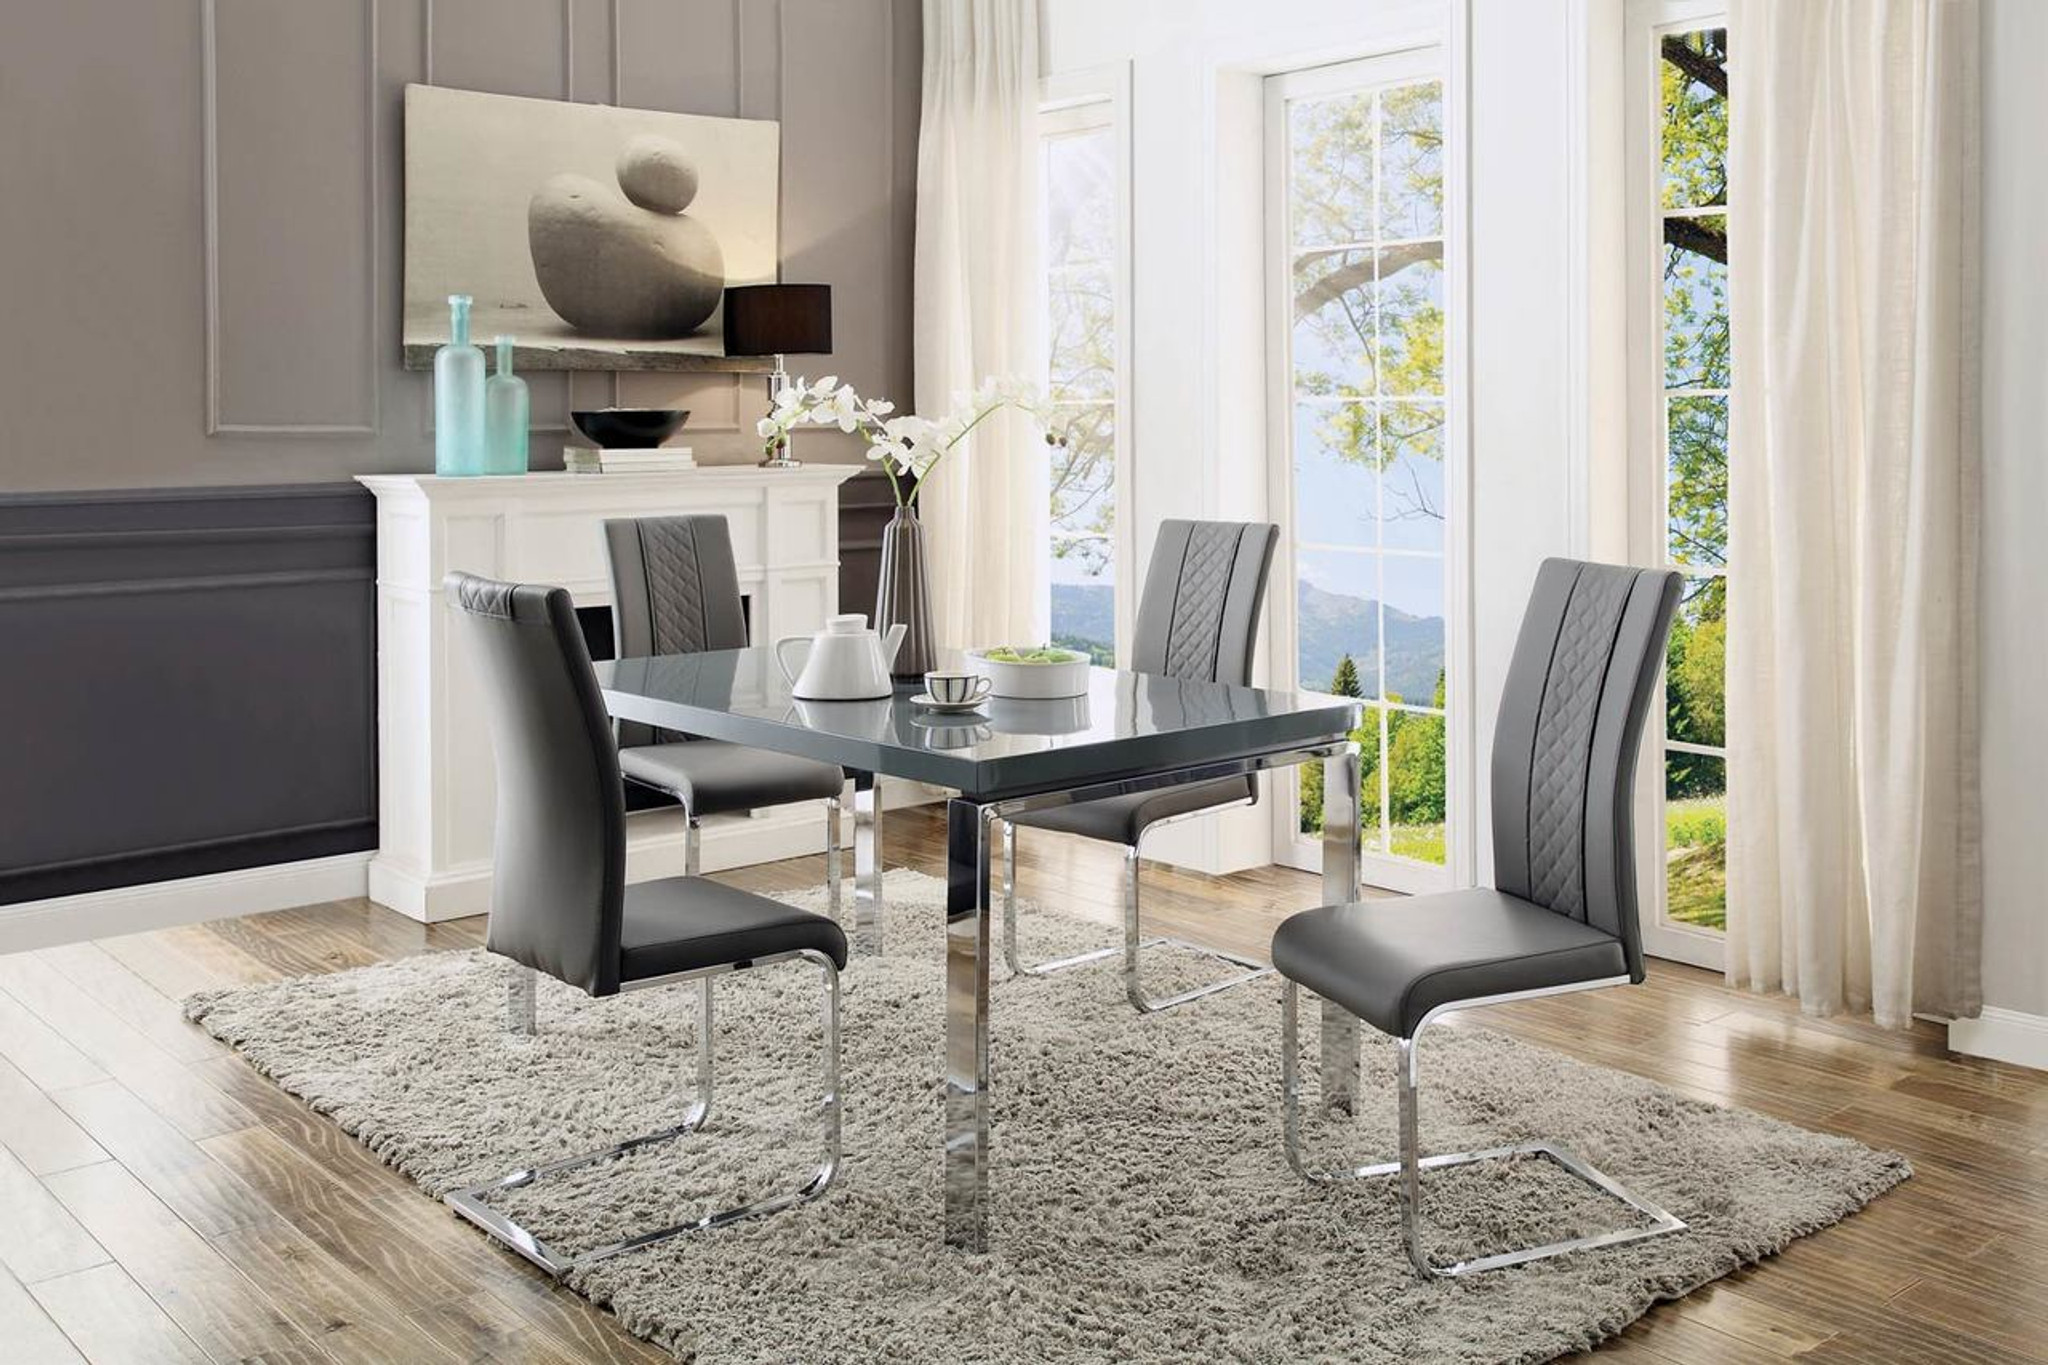 Remarkable Miami Collection Dining Table 5 Pcs Set Interior Design Ideas Philsoteloinfo